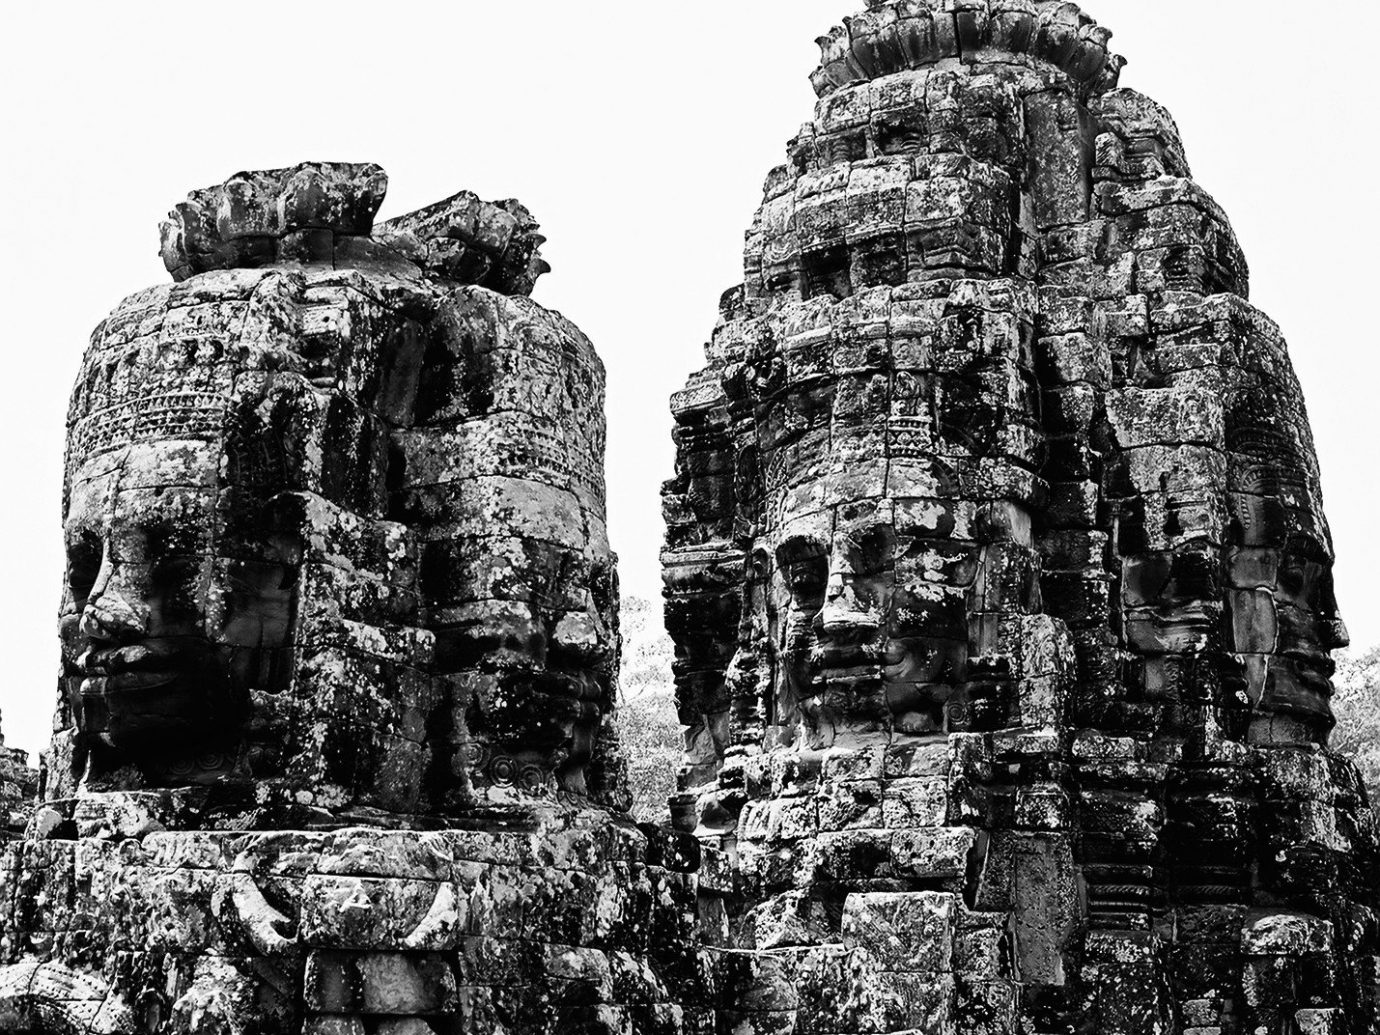 Offbeat tree black and white outdoor historic site archaeological site landmark stone carving hindu temple building monument monochrome photography rock Ruins statue monochrome ancient history place of worship temple maya civilization sculpture monolith old stone